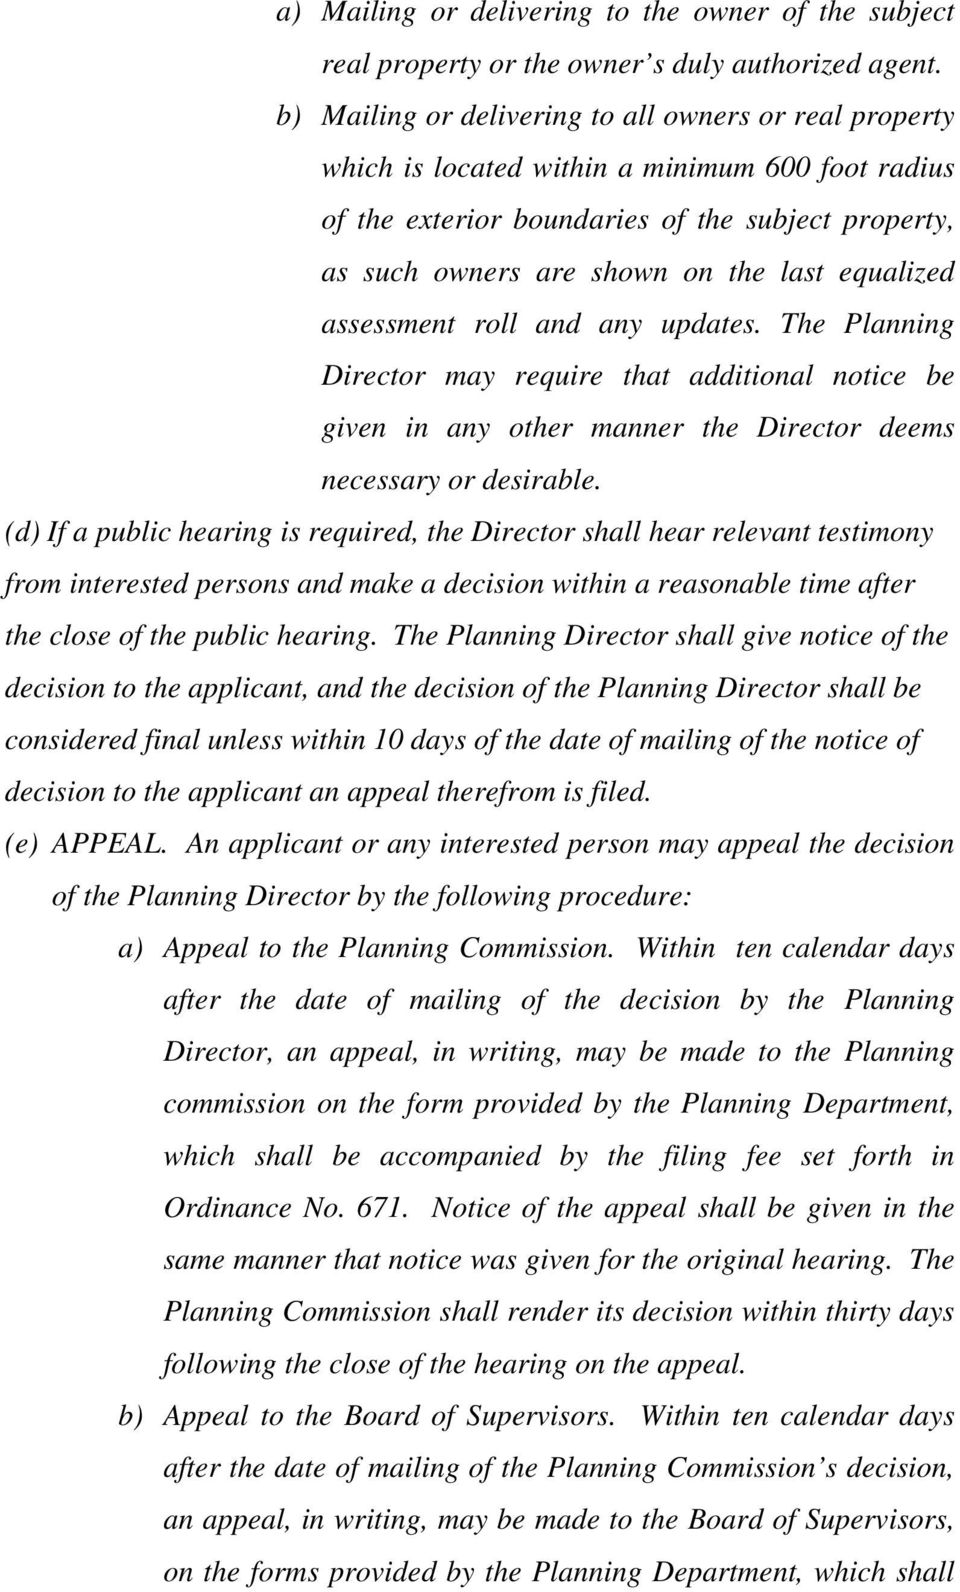 equalized assessment roll and any updates. The Planning Director may require that additional notice be given in any other manner the Director deems necessary or desirable.